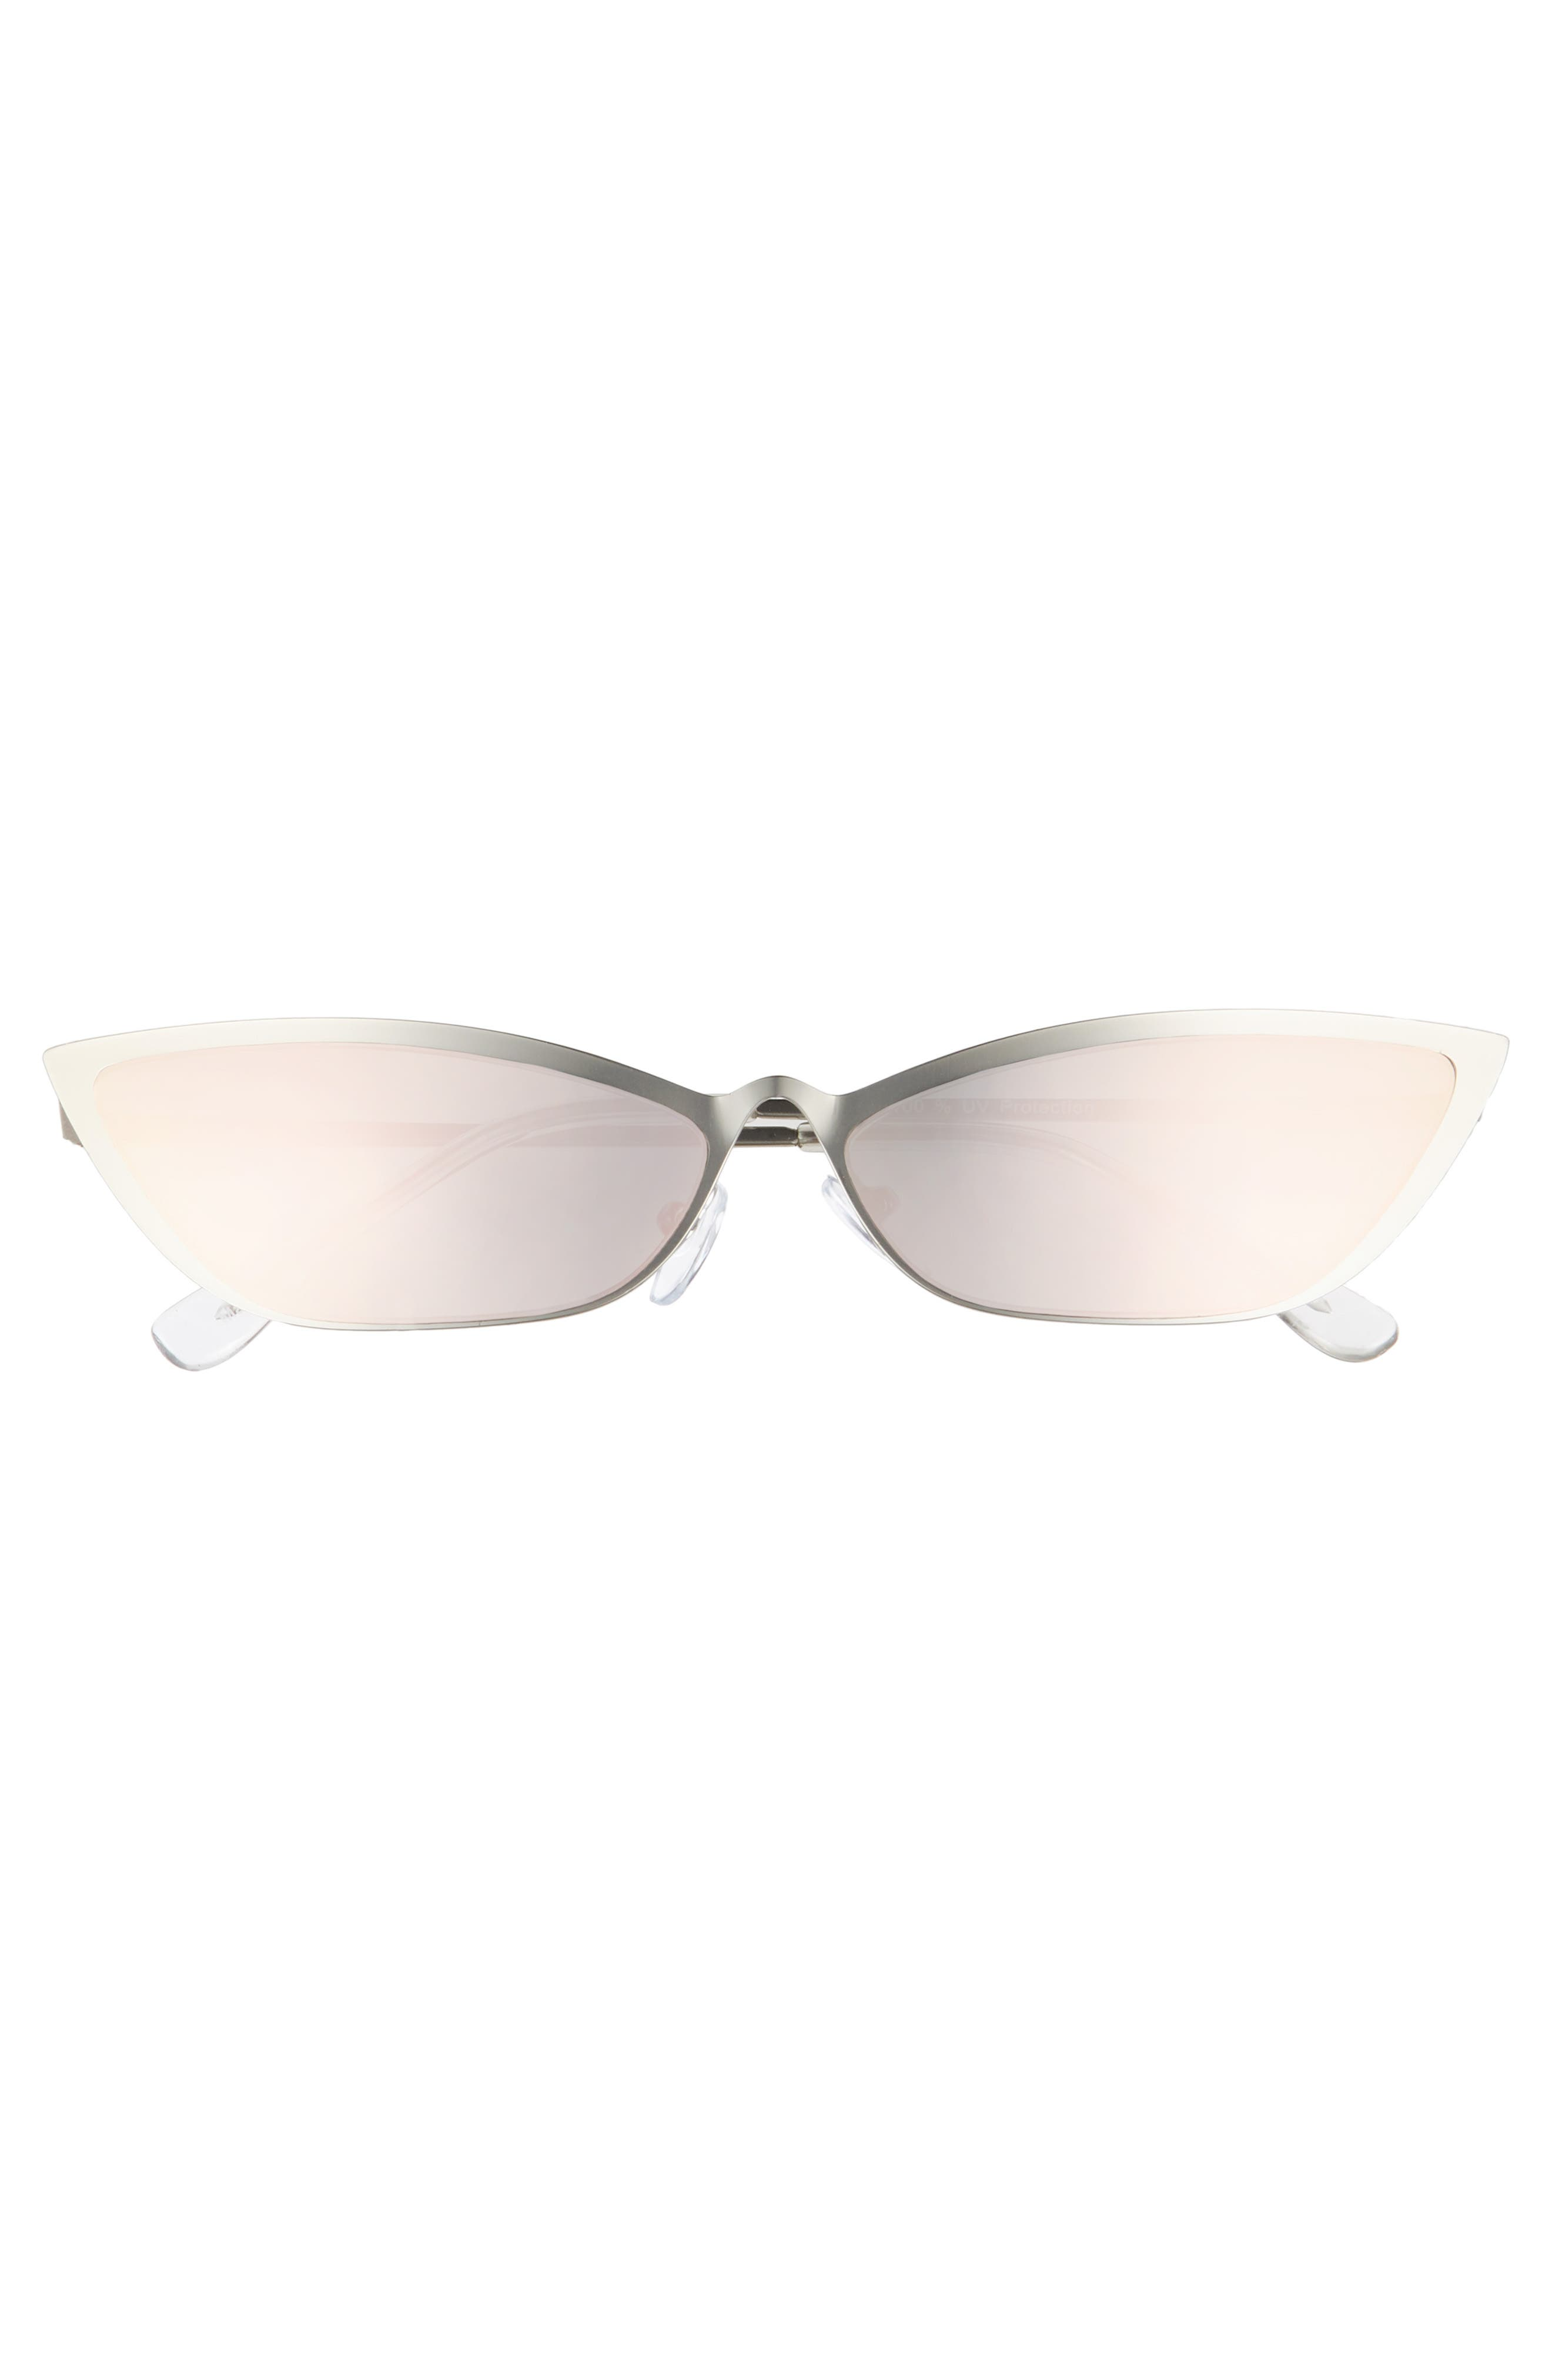 67mm Mirror Cat Eye Sunglasses,                             Alternate thumbnail 3, color,                             SILVER/ PINK